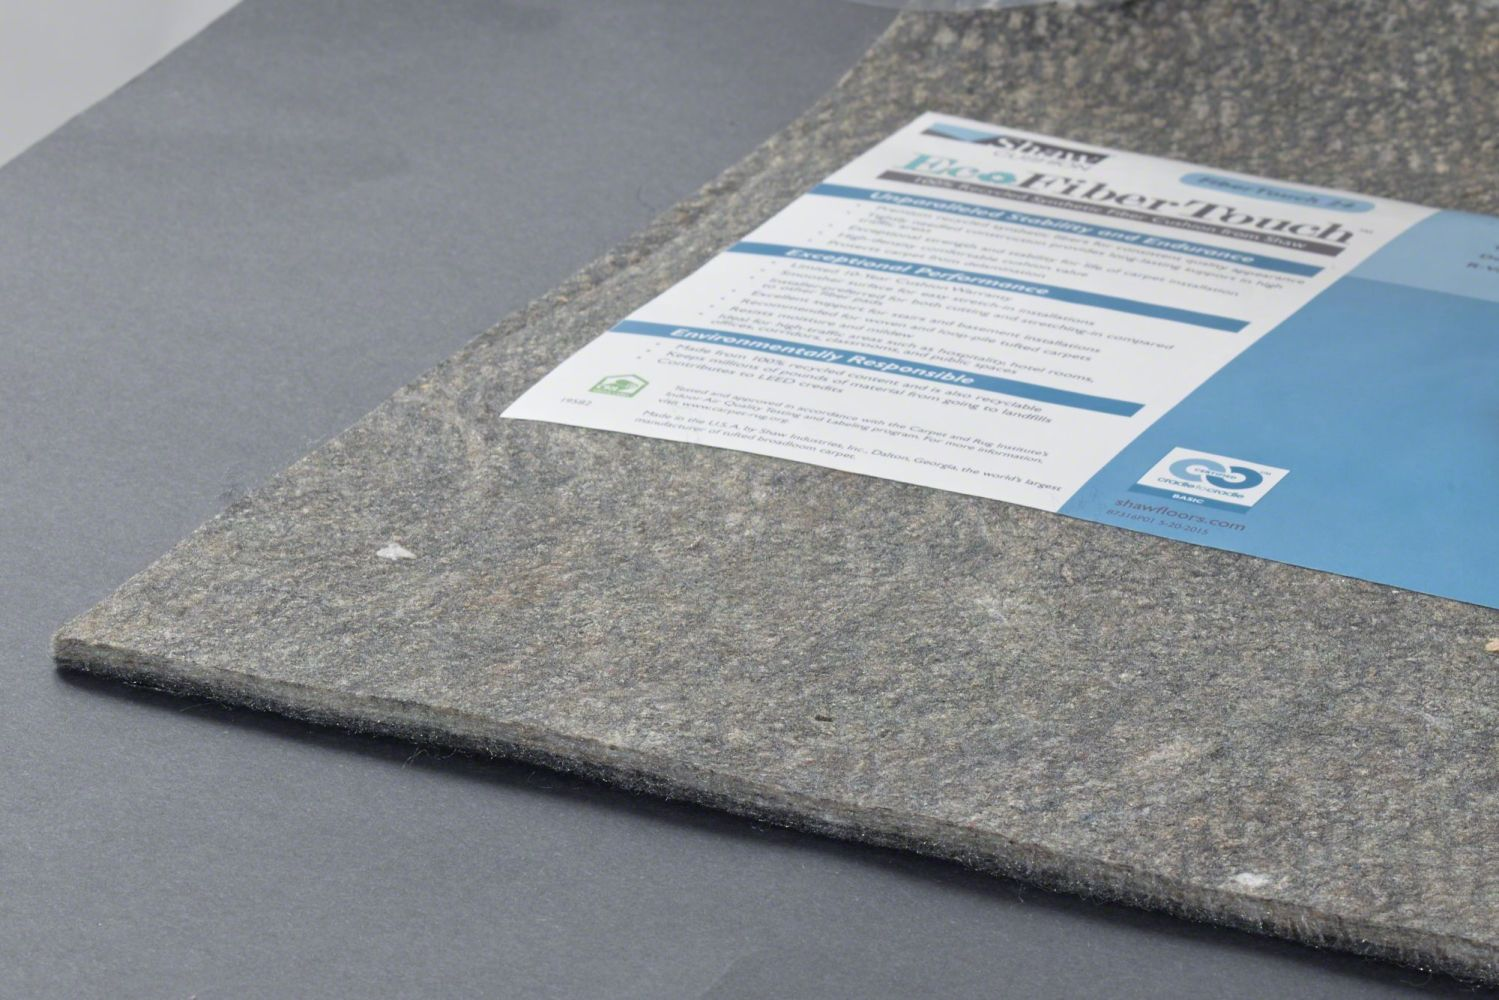 Philadelphia Commercial Eco Edge Cushion Fibertouch 24-6 Grey 00001_260FT